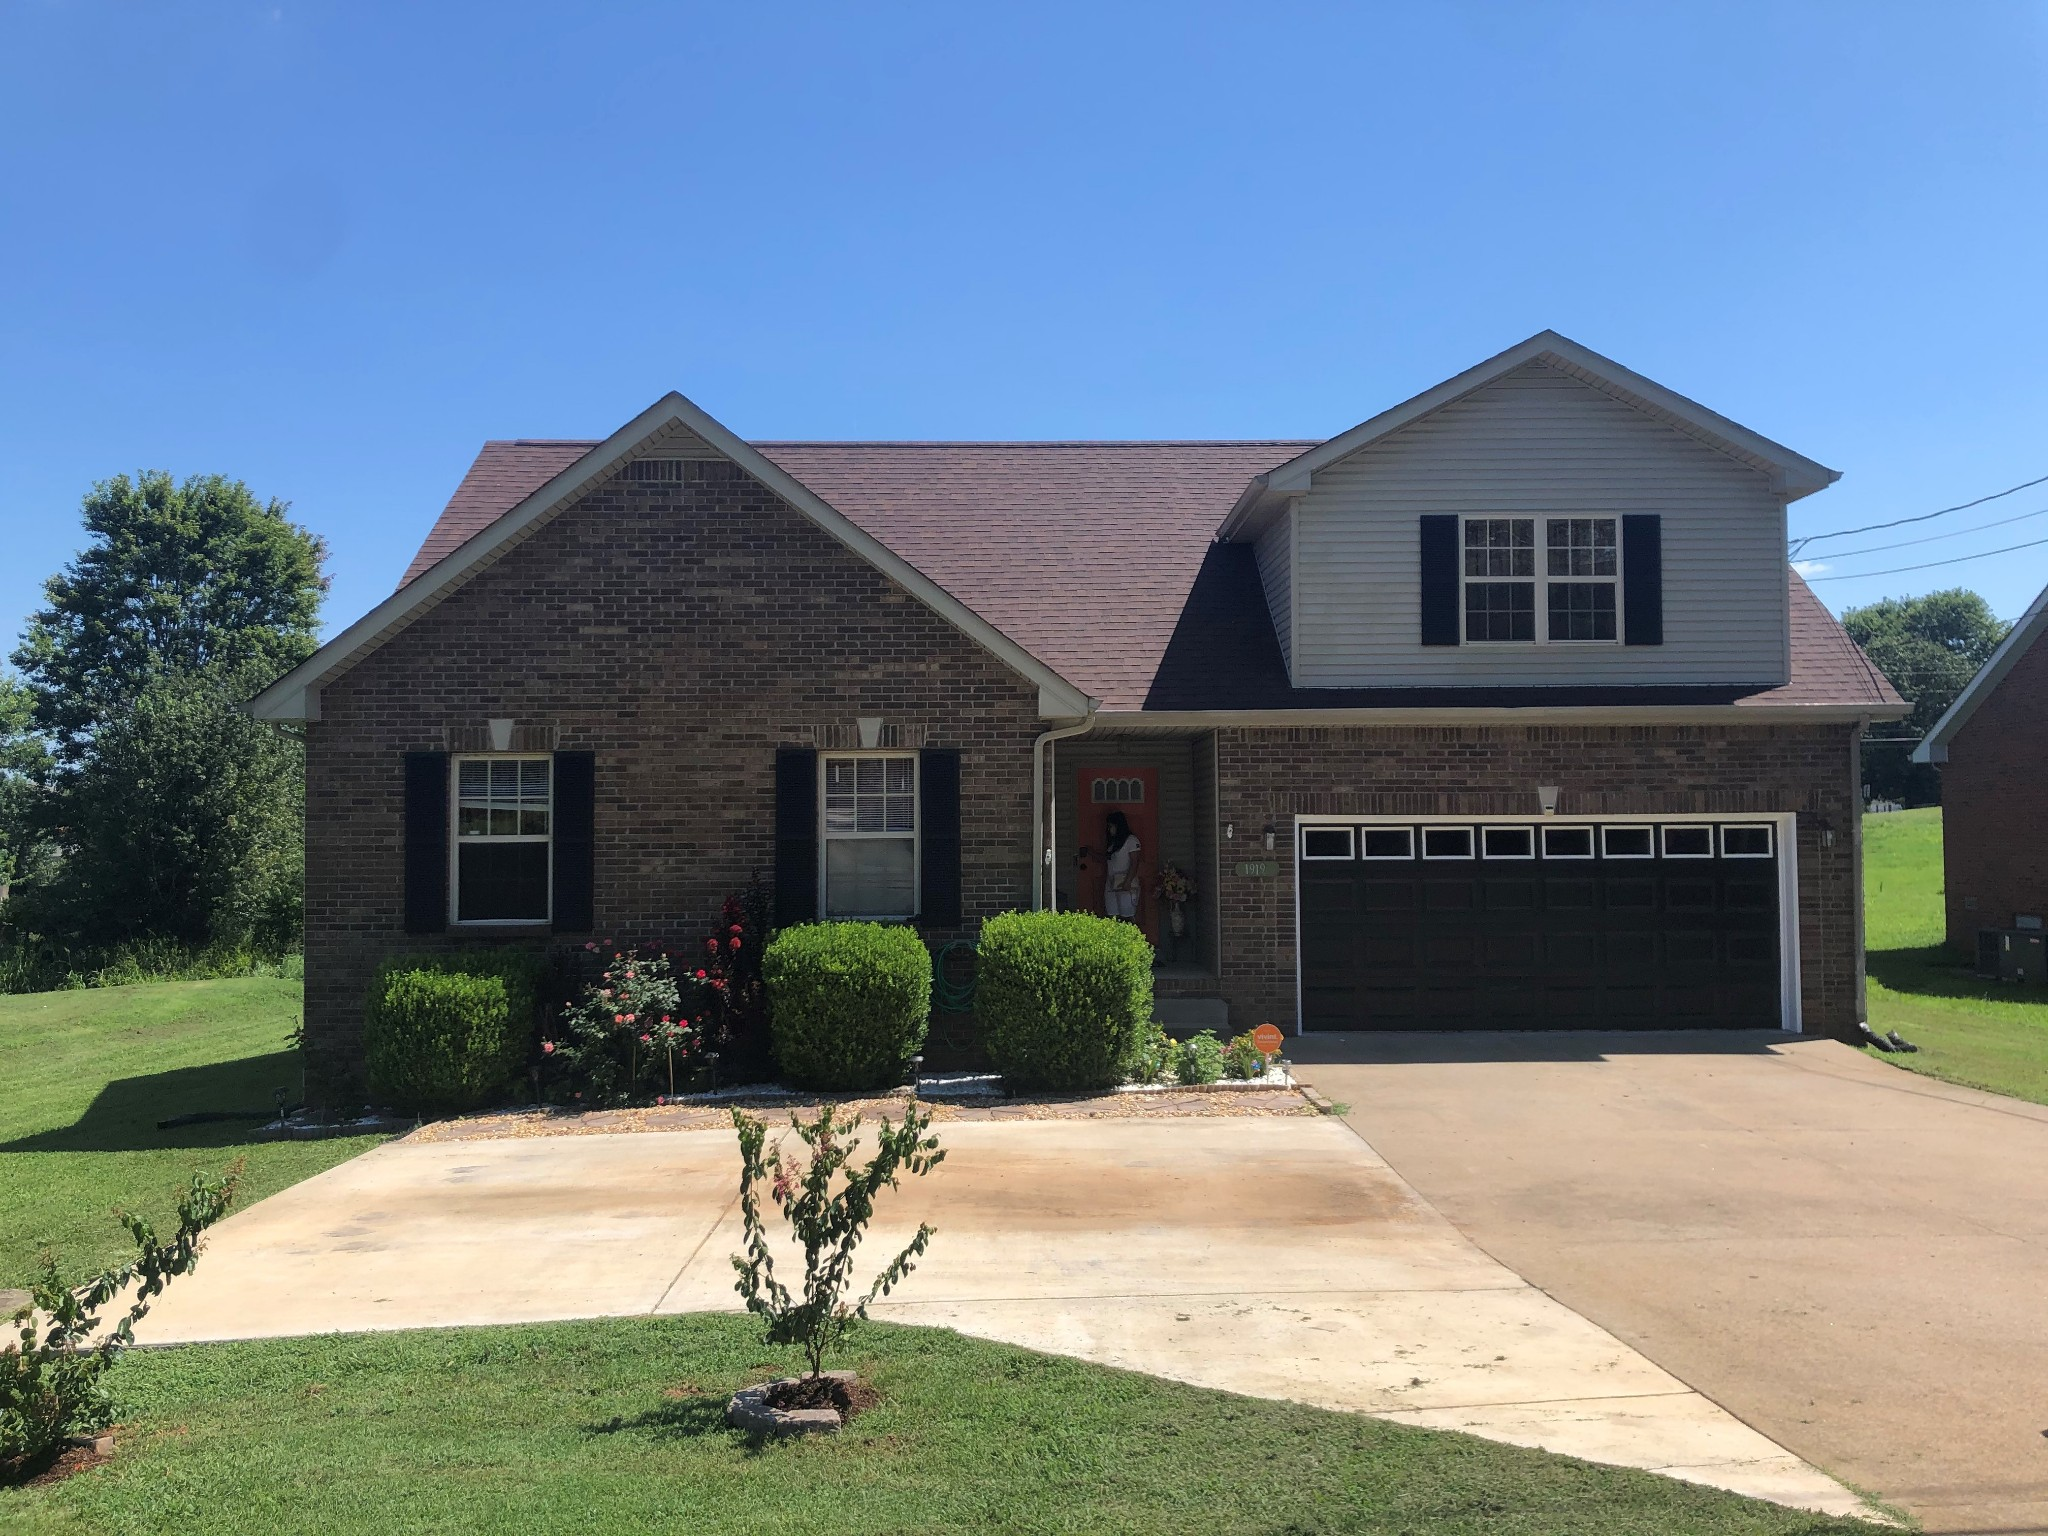 1919 Needmore Rd Property Photo - Clarksville, TN real estate listing